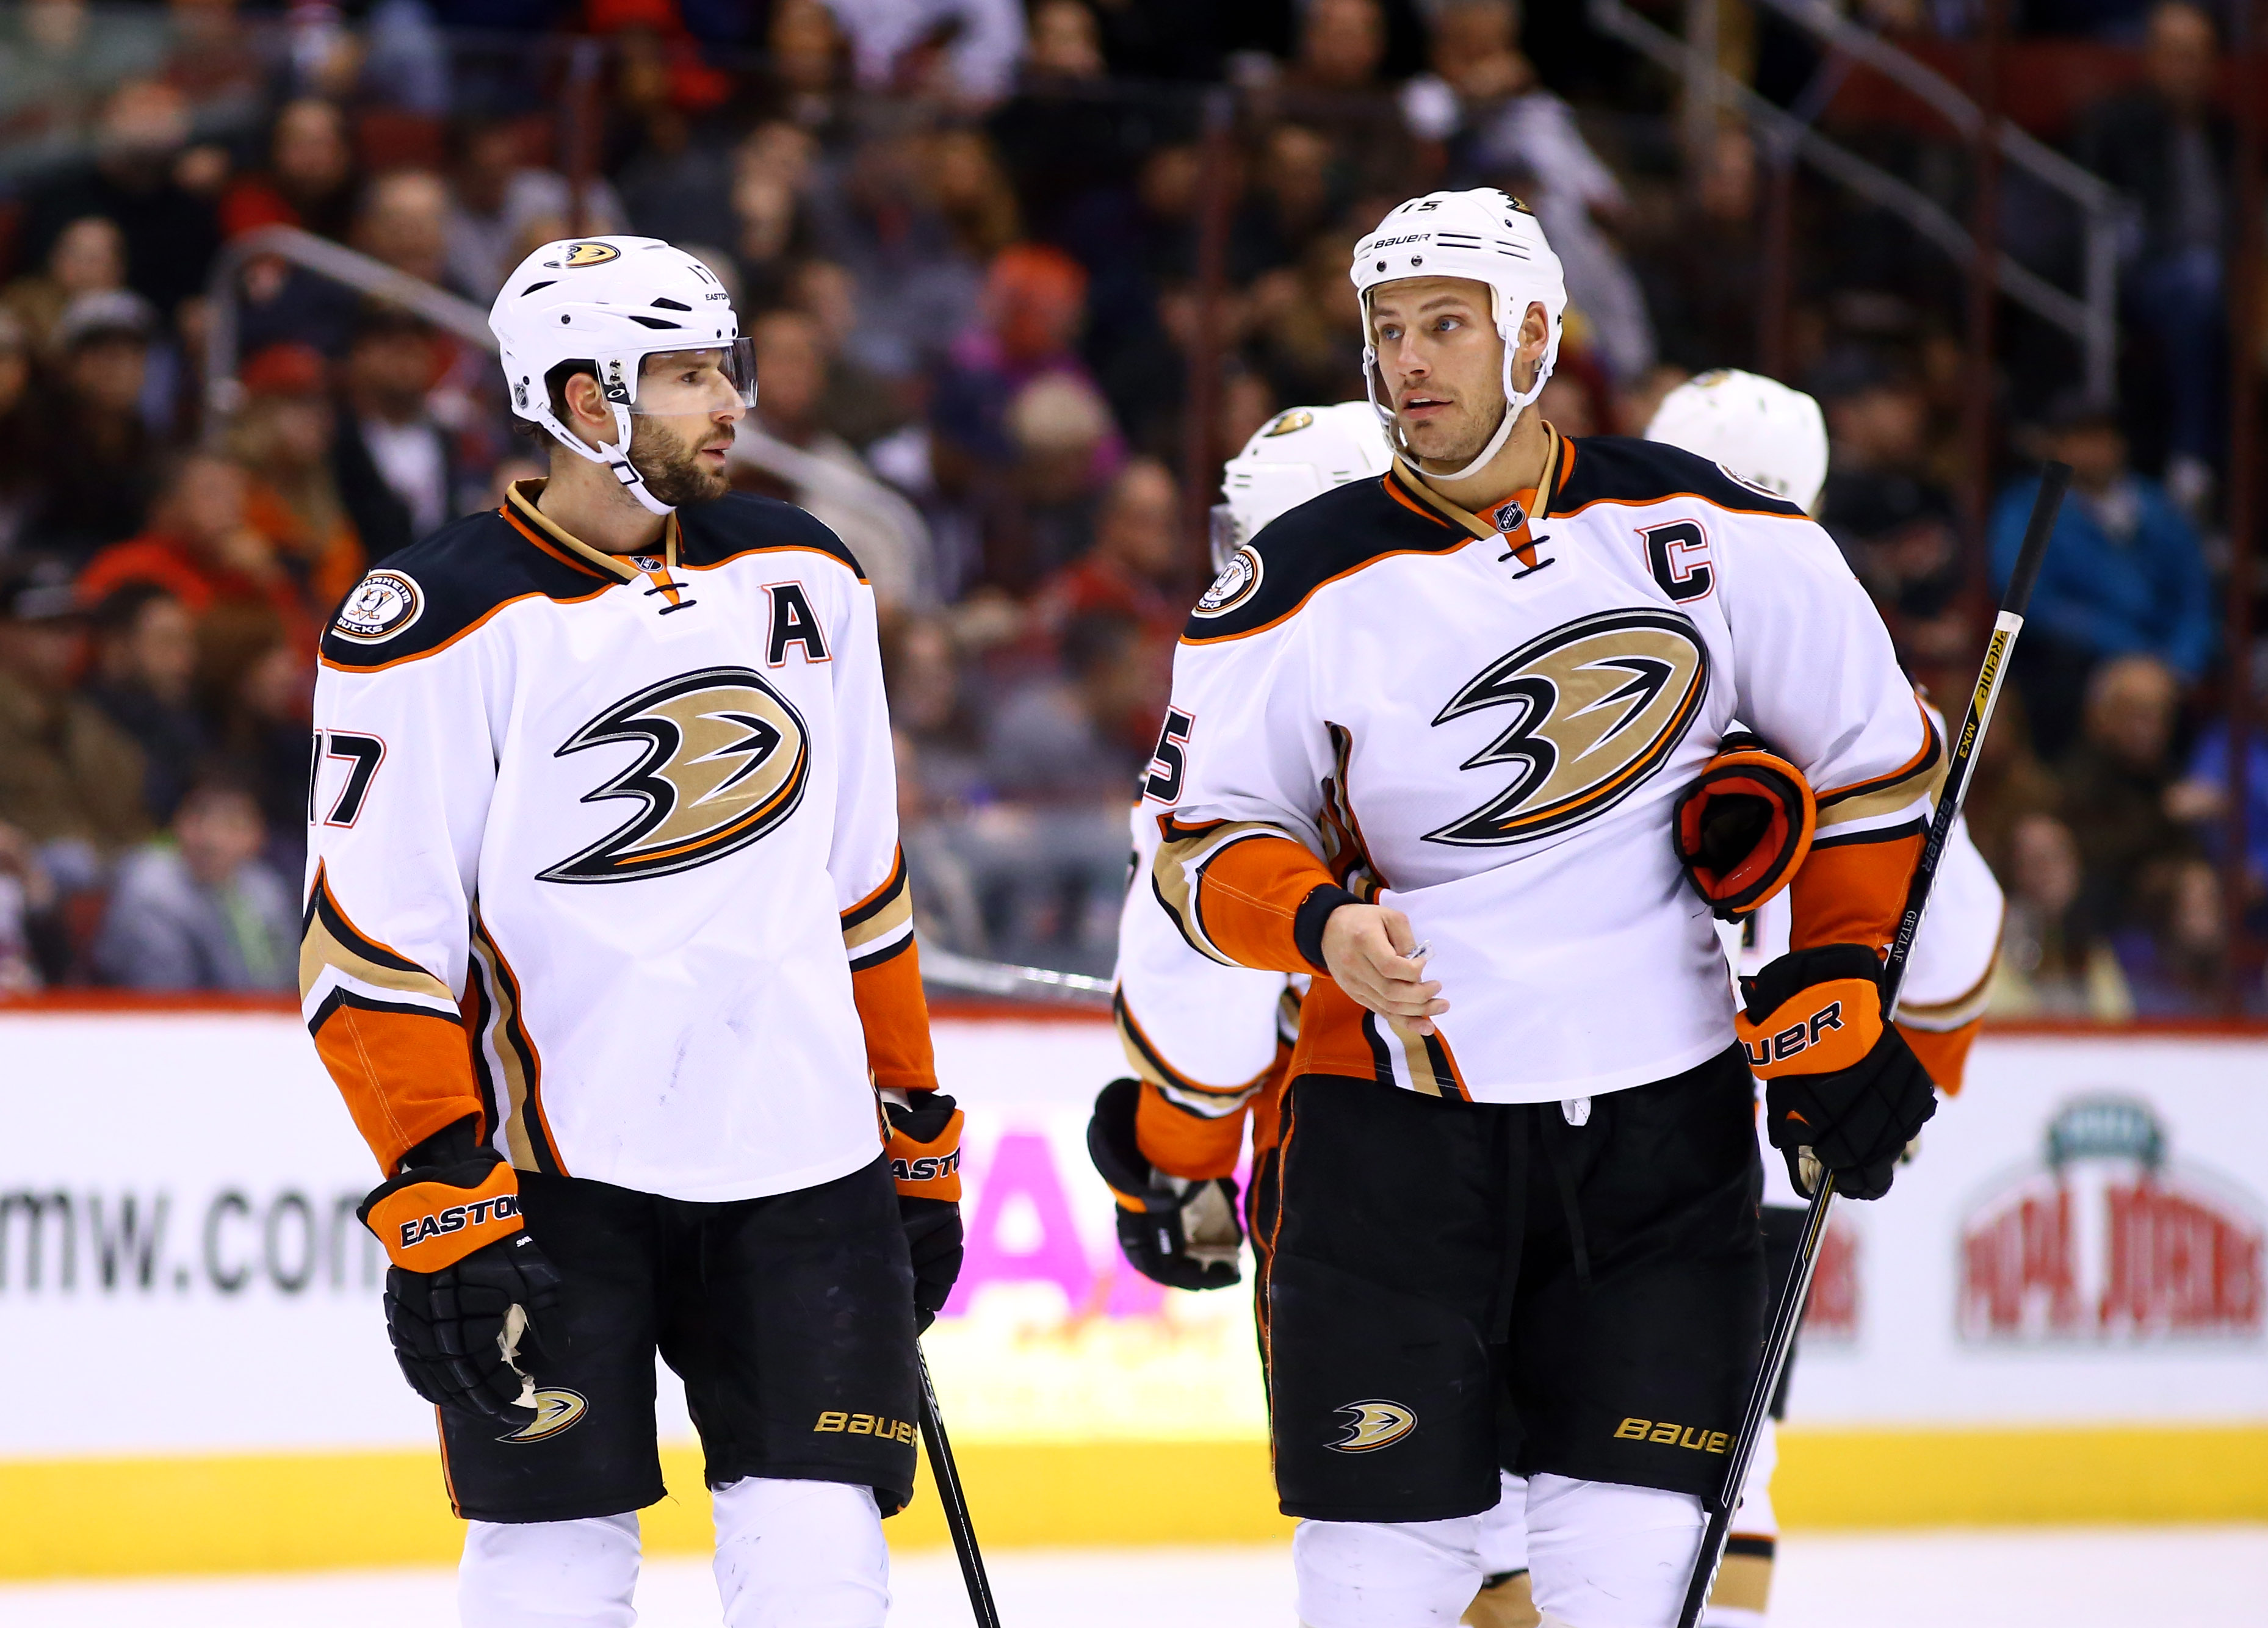 Ryan Kesler and Ryan Getzlaf give the Ducks one of the best Center duos in the league.